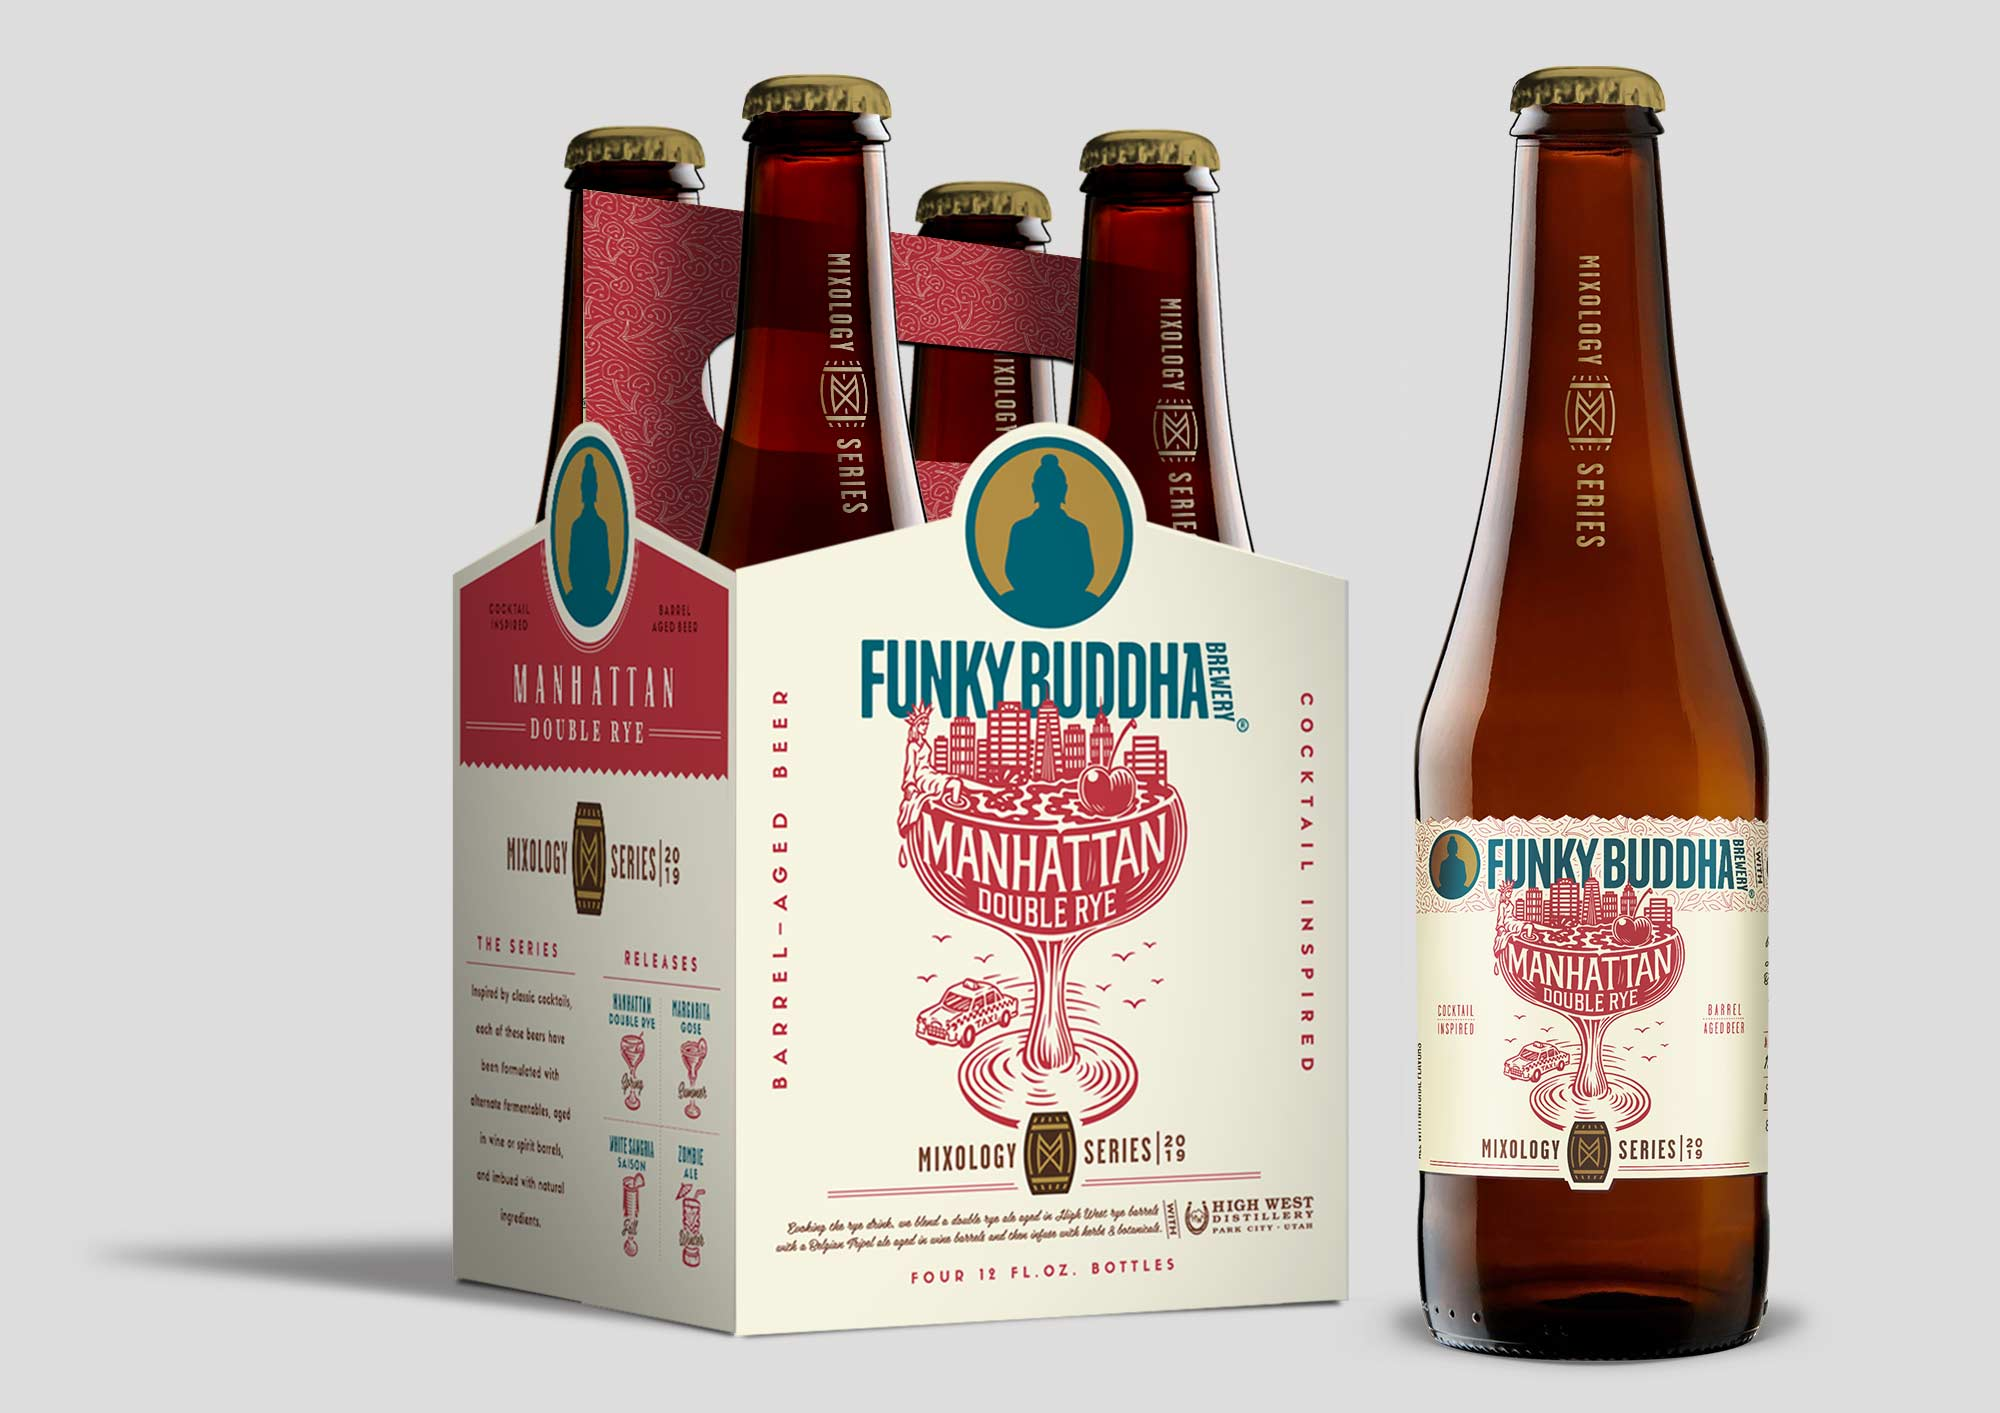 Funky Buddha Brewery Mixology Series Manhattan Double Rye Ale label design and illustration.